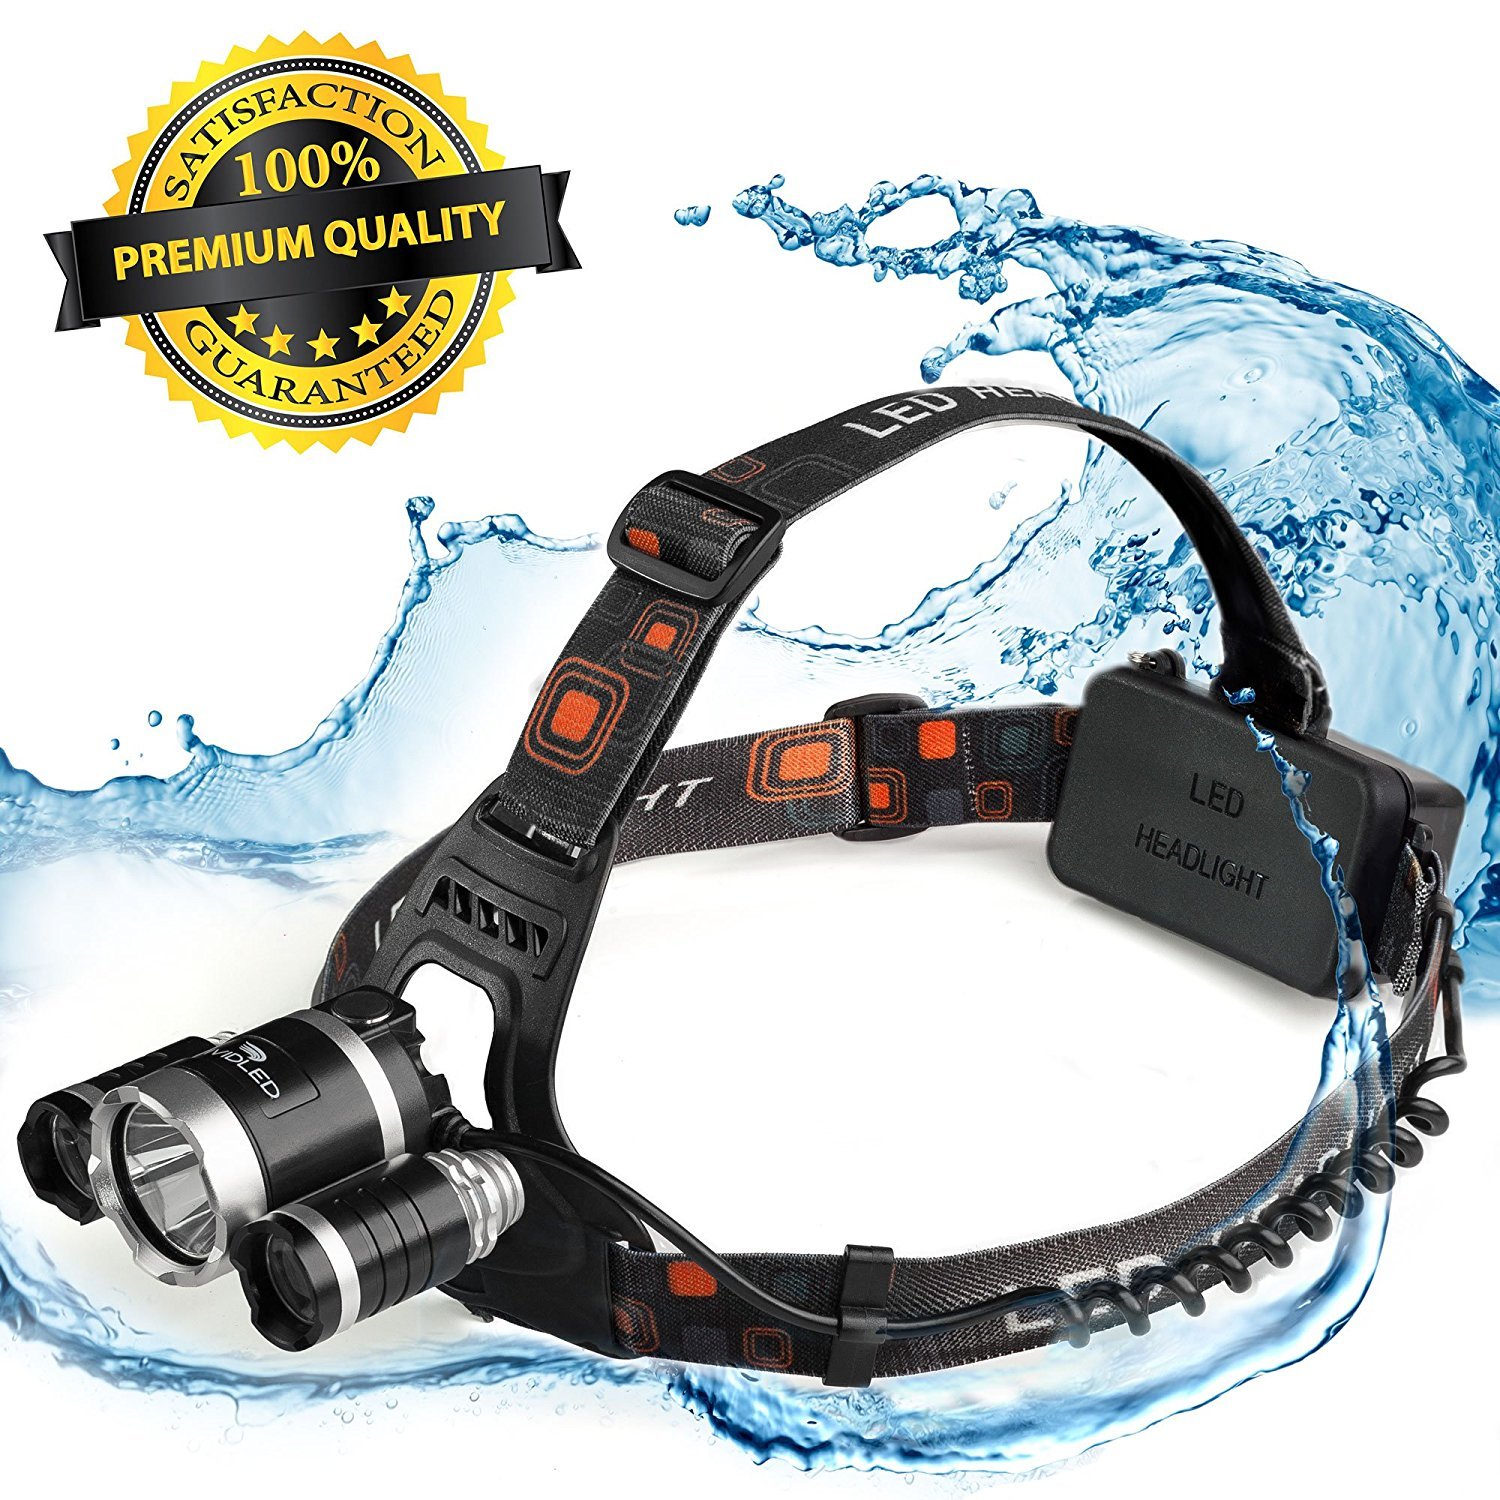 Headlamp - LED Headlamp - Rechargeable Headlamp - Headlamp Flashlight - Cree Headlamp - Bright - Headlight - Headlamp rechargeable batteries - Waterproof USB Head Light for Hunting – Camping